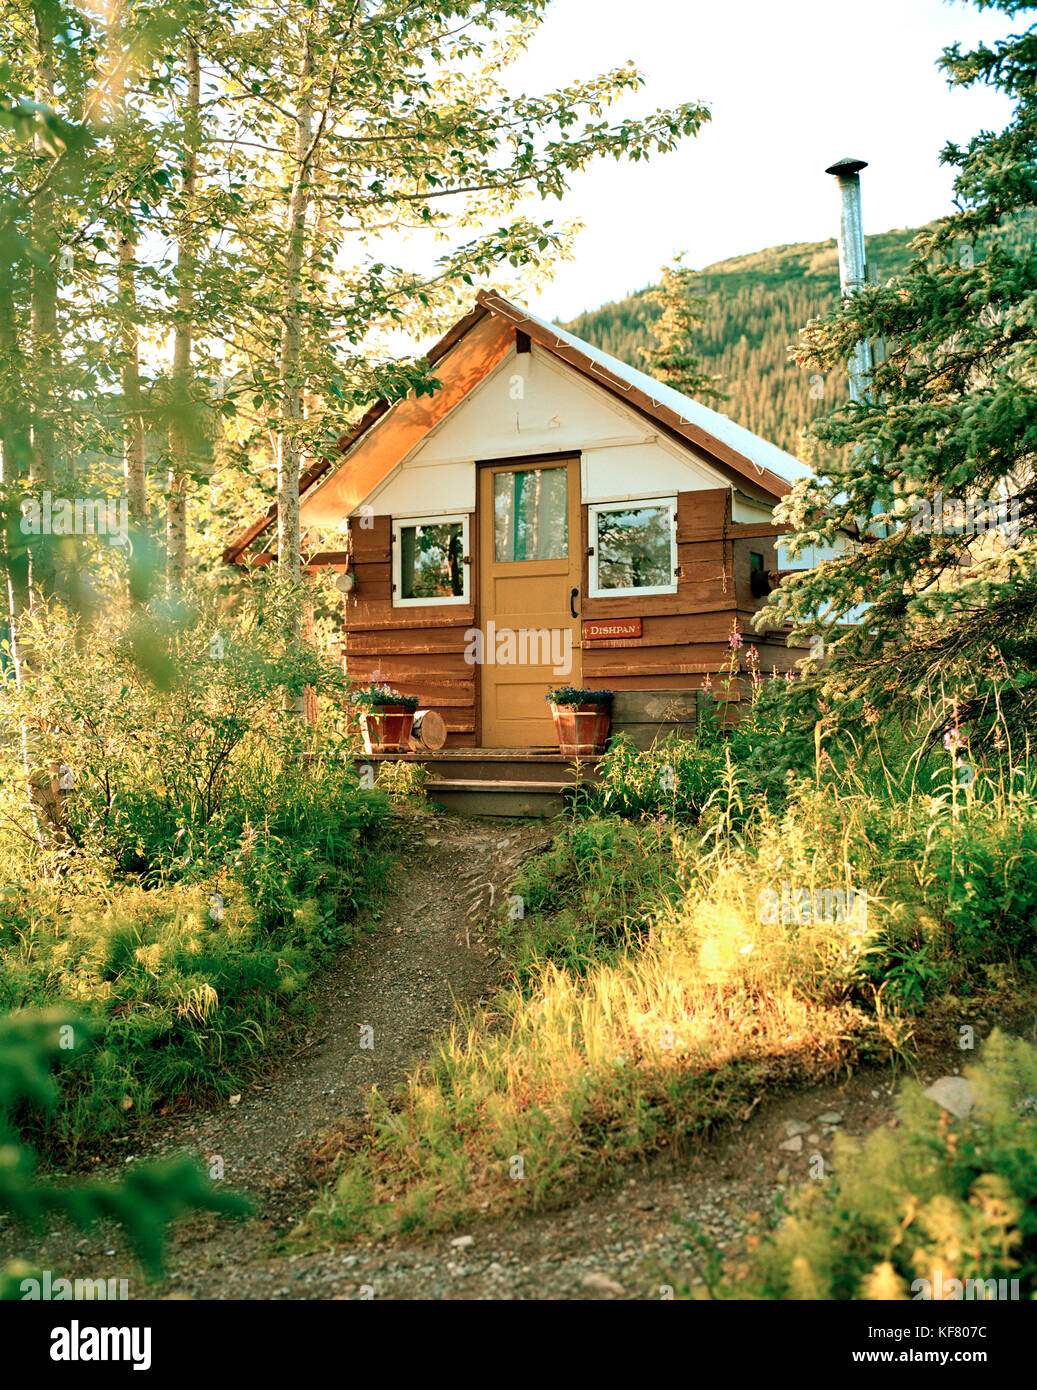 USA, Alaska, Camp Denali Cabin In Denali National Park